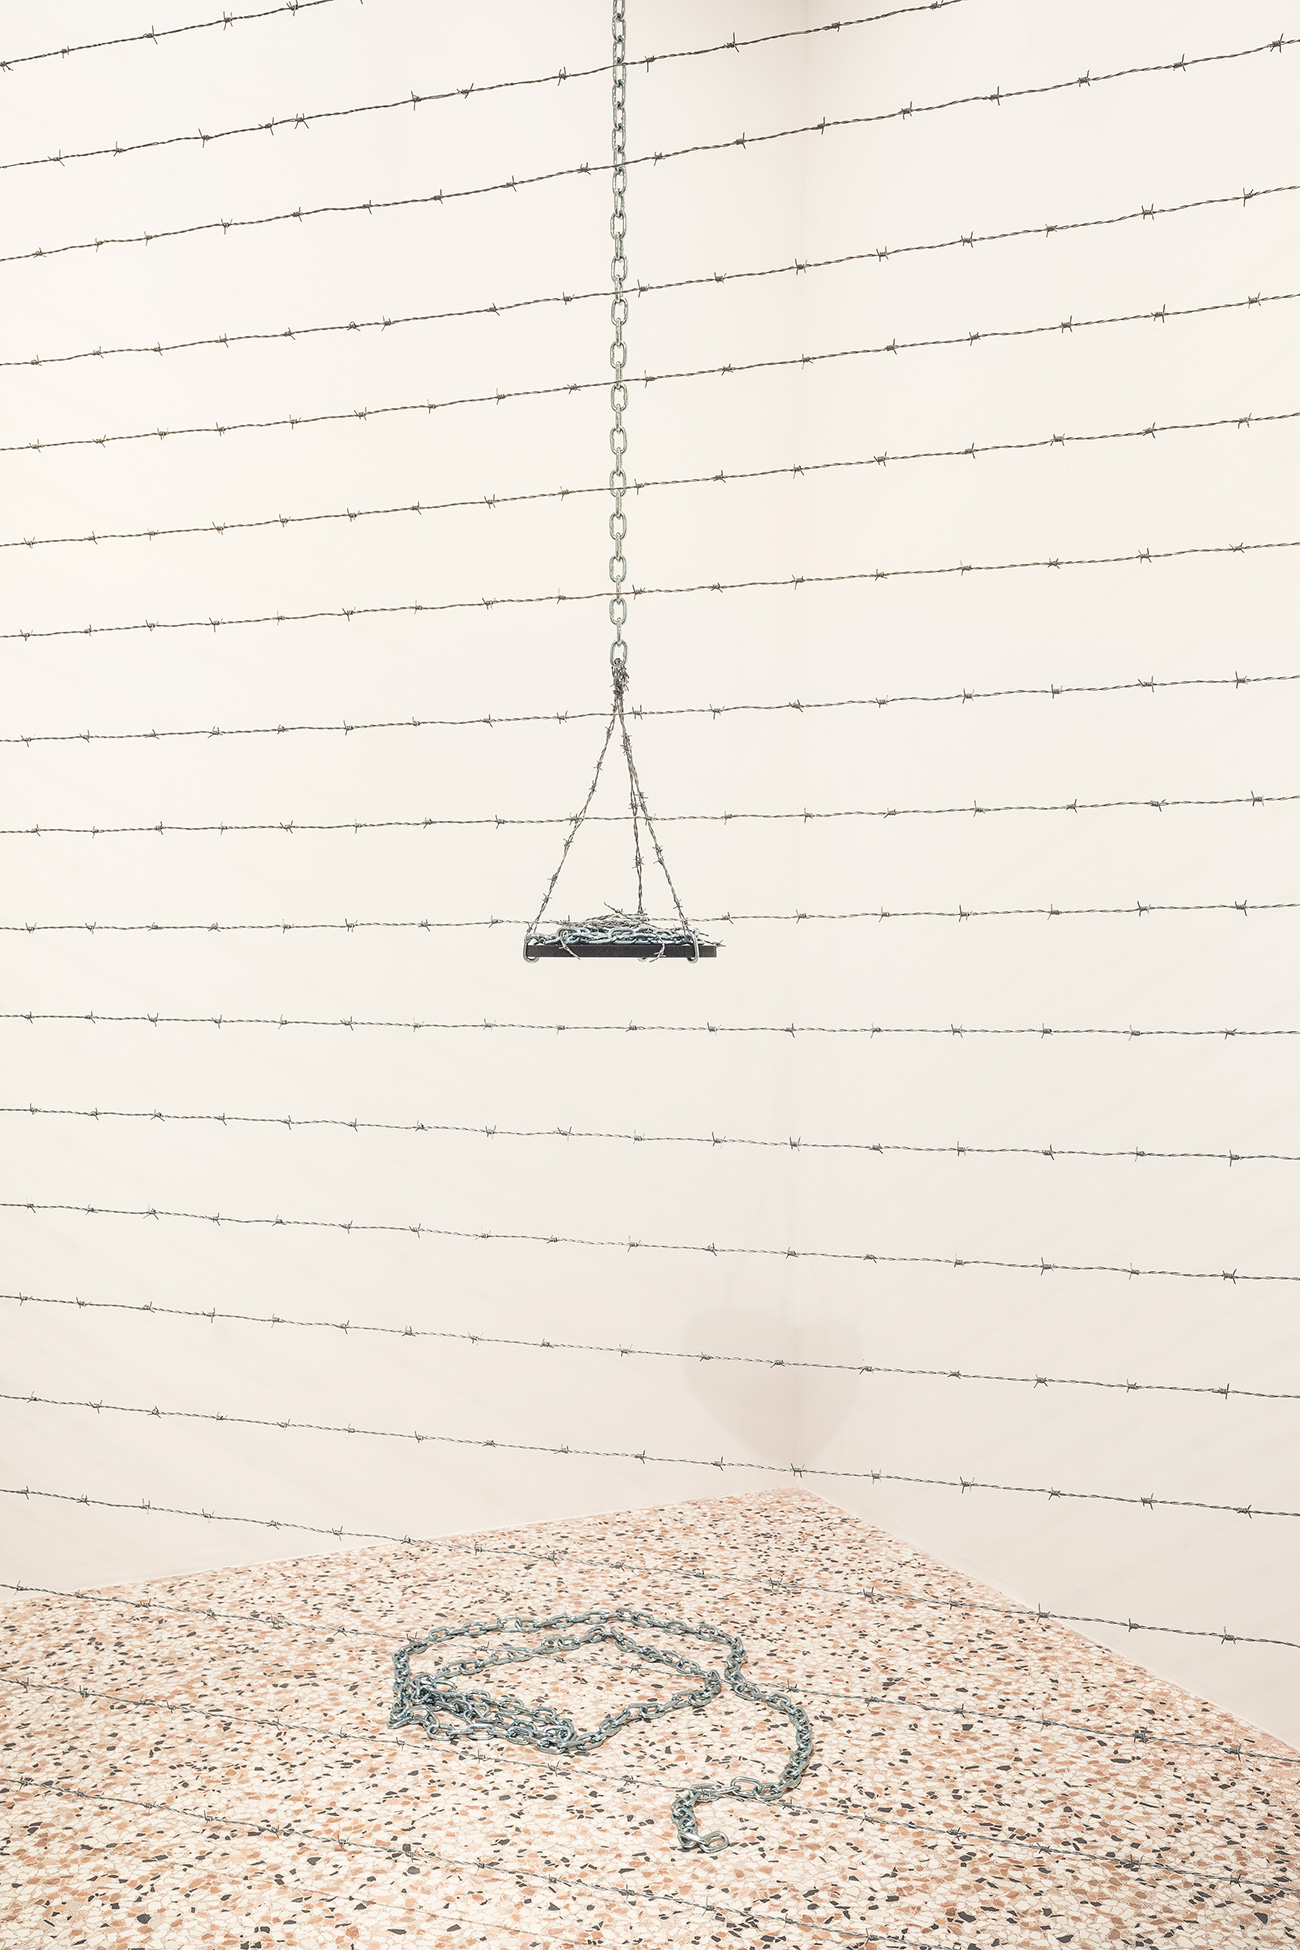 Melvin Edwards. Corner for Ana 1970/2017 Barbed wire Courtesy of the artist and Alexander Gray Associates, New York Installation View, Space Force Construction\n